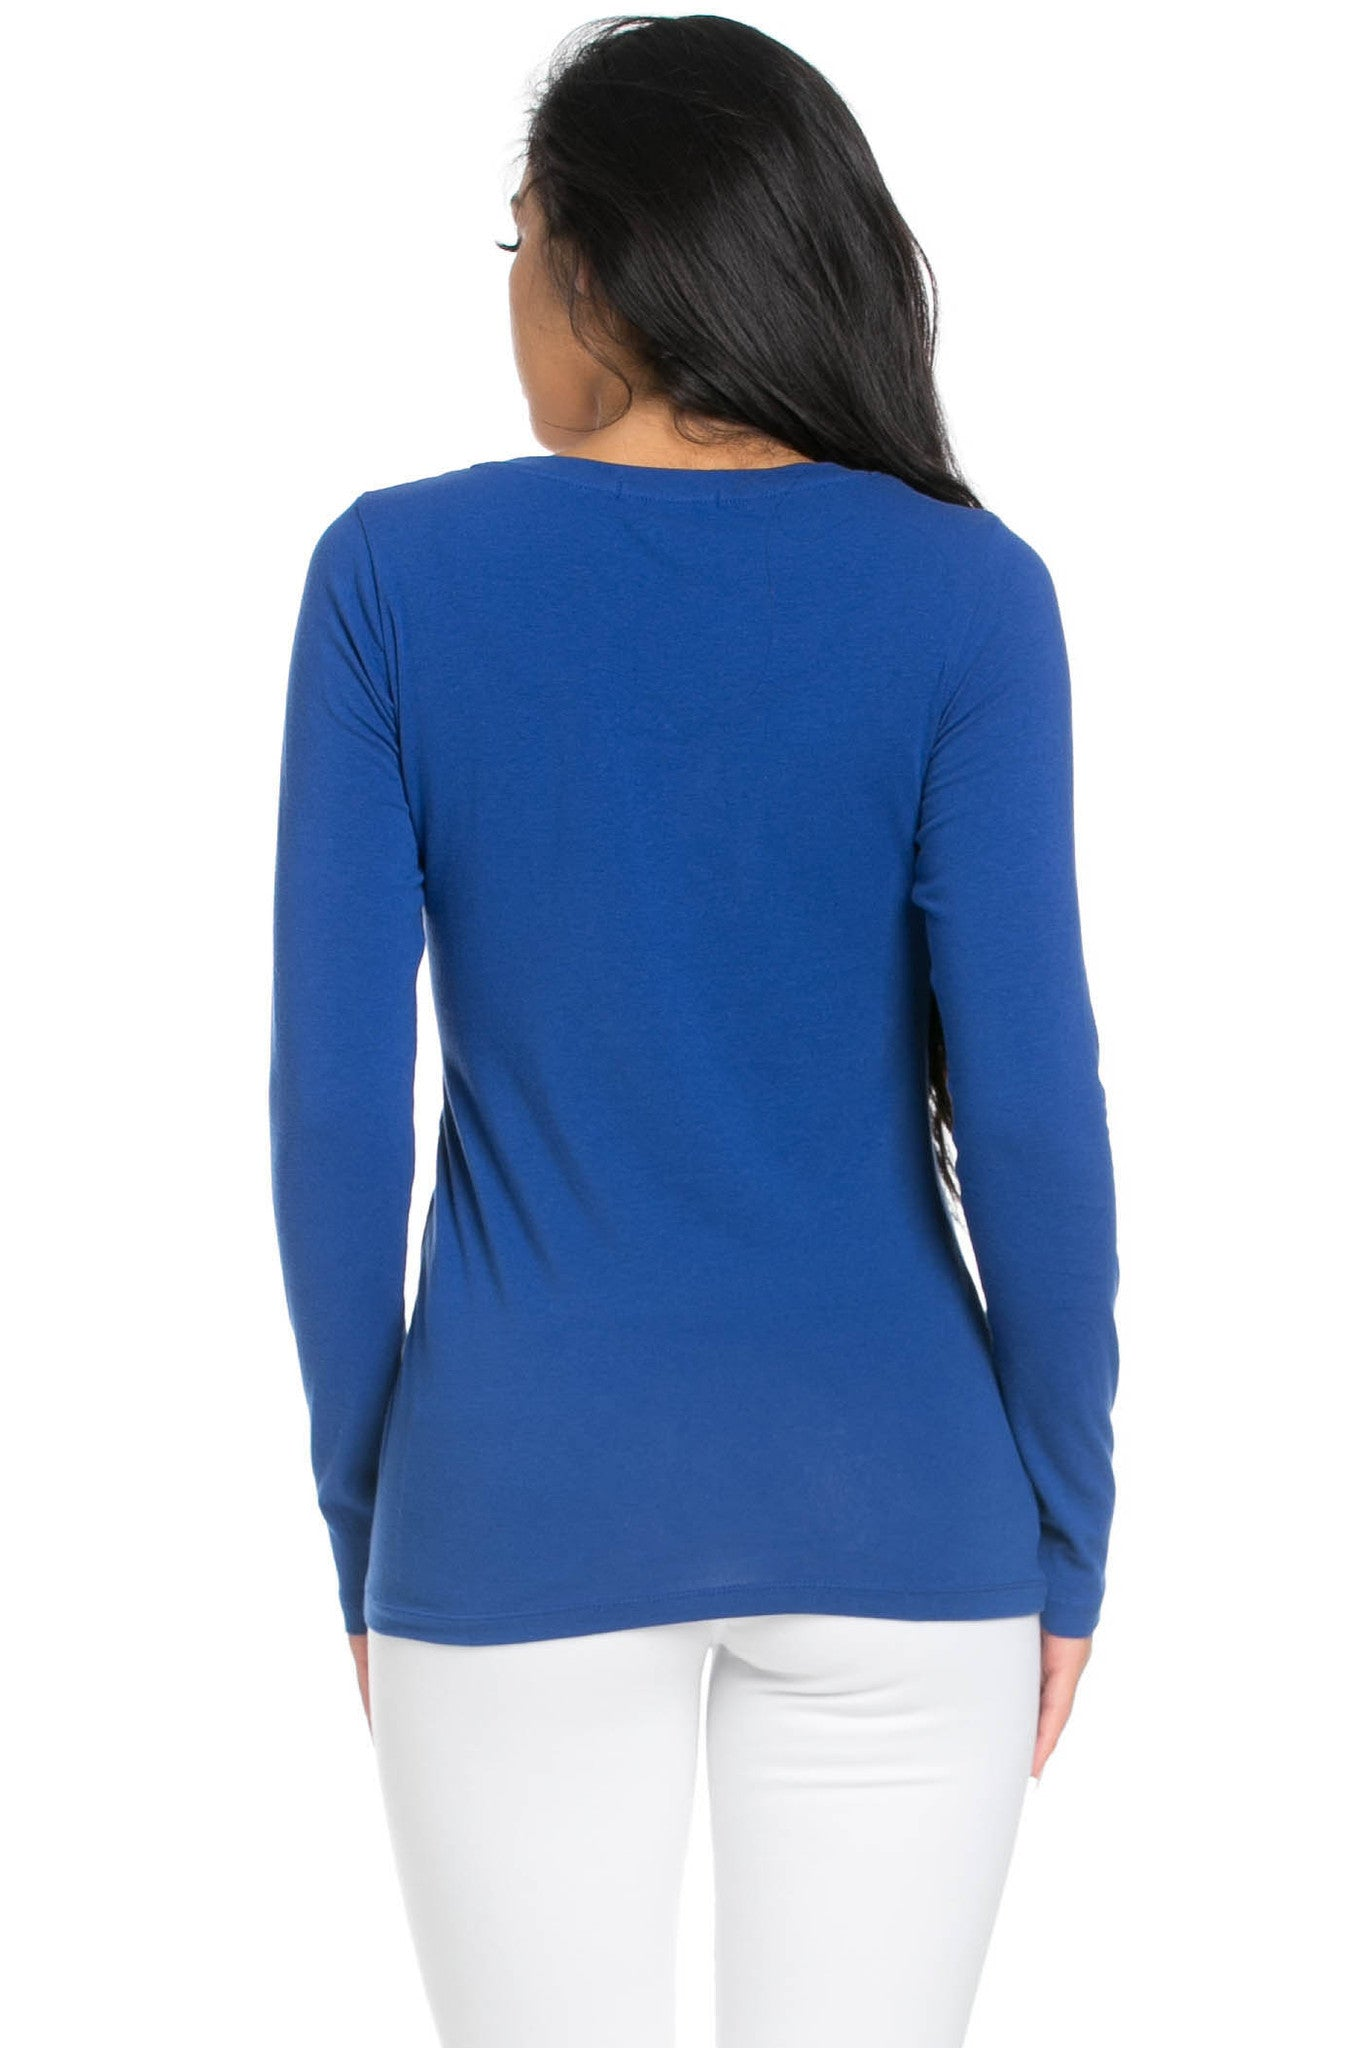 Long Sleeve Round Neck Tee Top Royal Blue - Tees - My Yuccie - 3